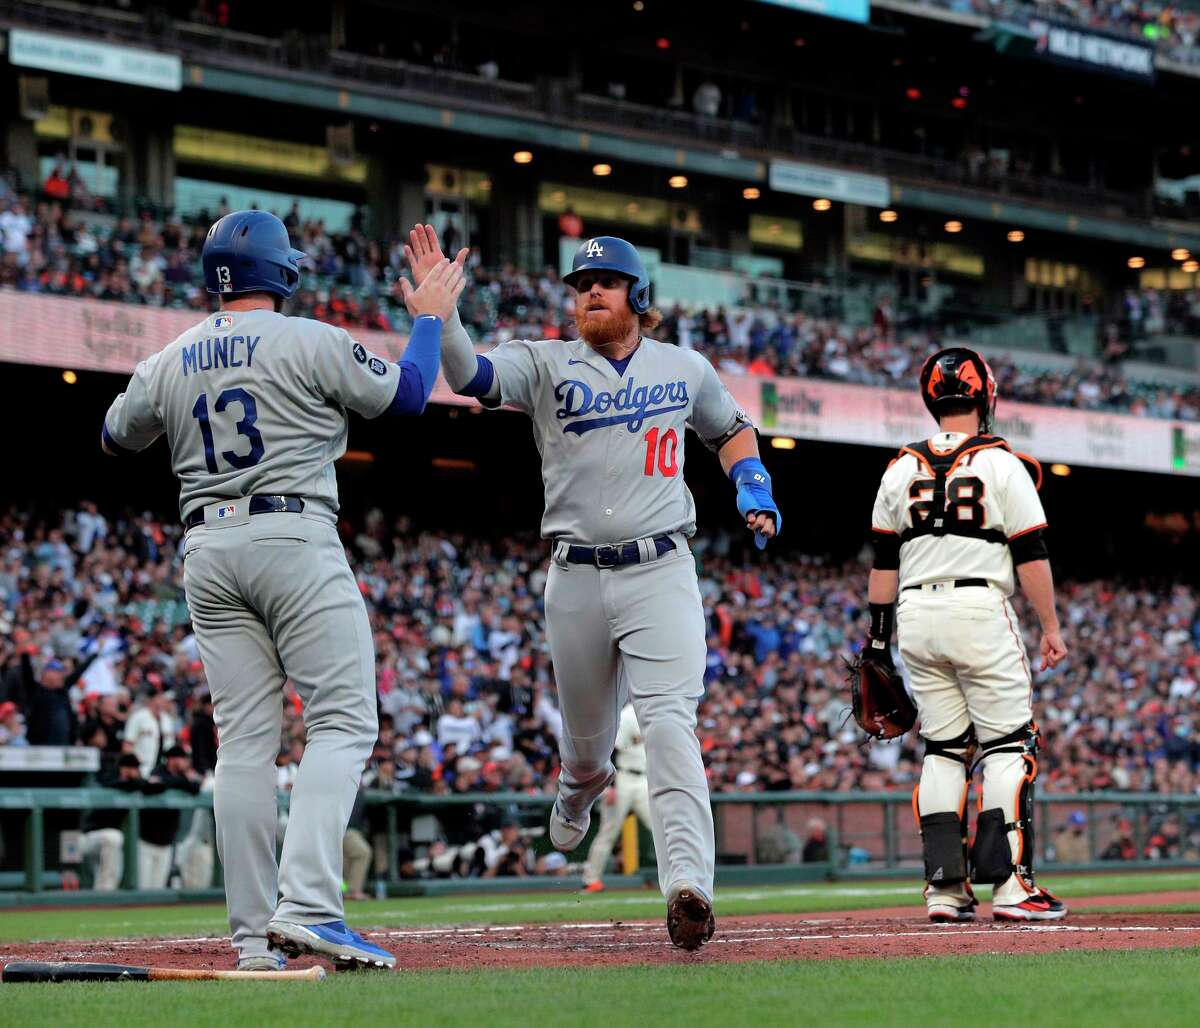 Max Muncy high fives Dodgers teammate Justin Turner after they scored on a Will Smith triple in the third inning.